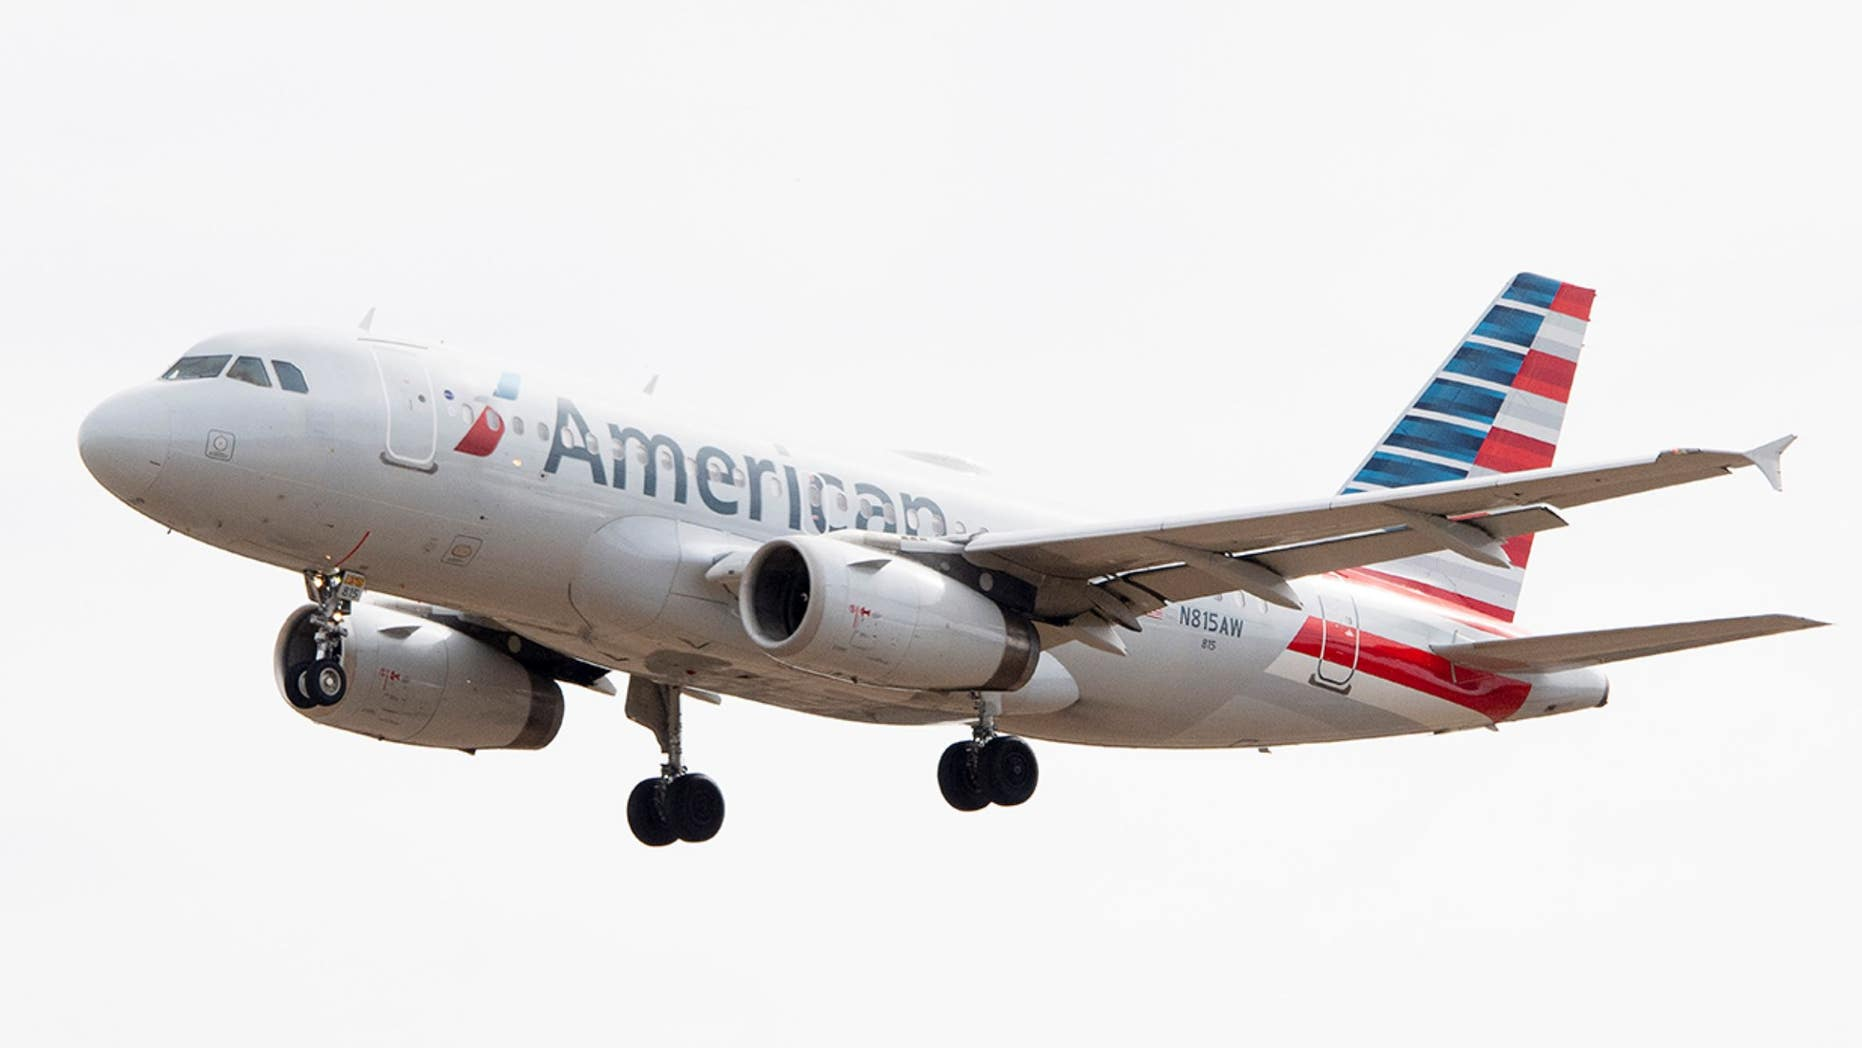 An American Airlines flight wasdiverted to Chicago while traveling to New York City from San Francisco after its bathrooms became unusable.